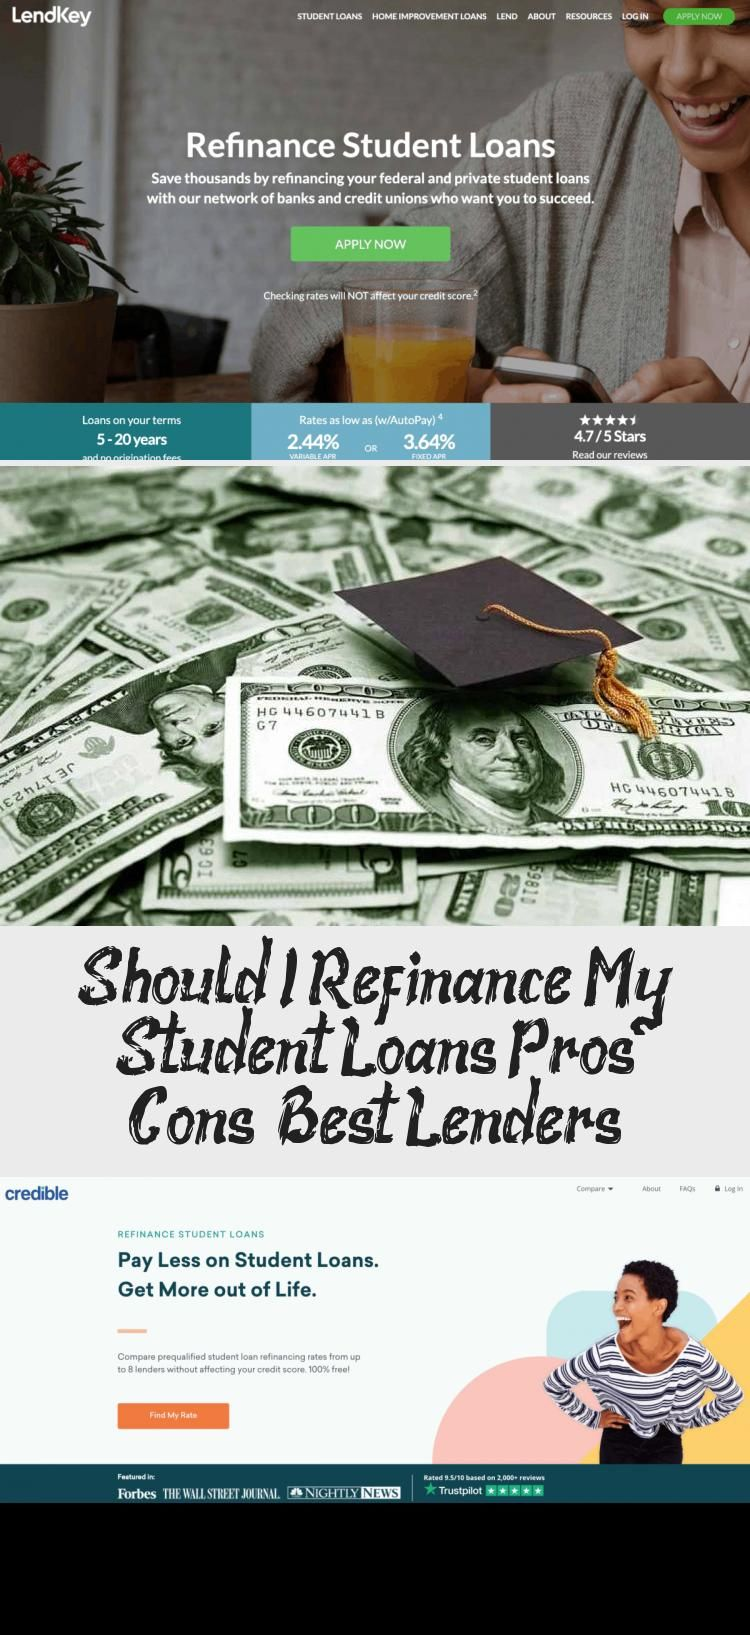 Should I Refinance My Student Loans Pros Cons Best Lenders Student Loans Credit Score Student